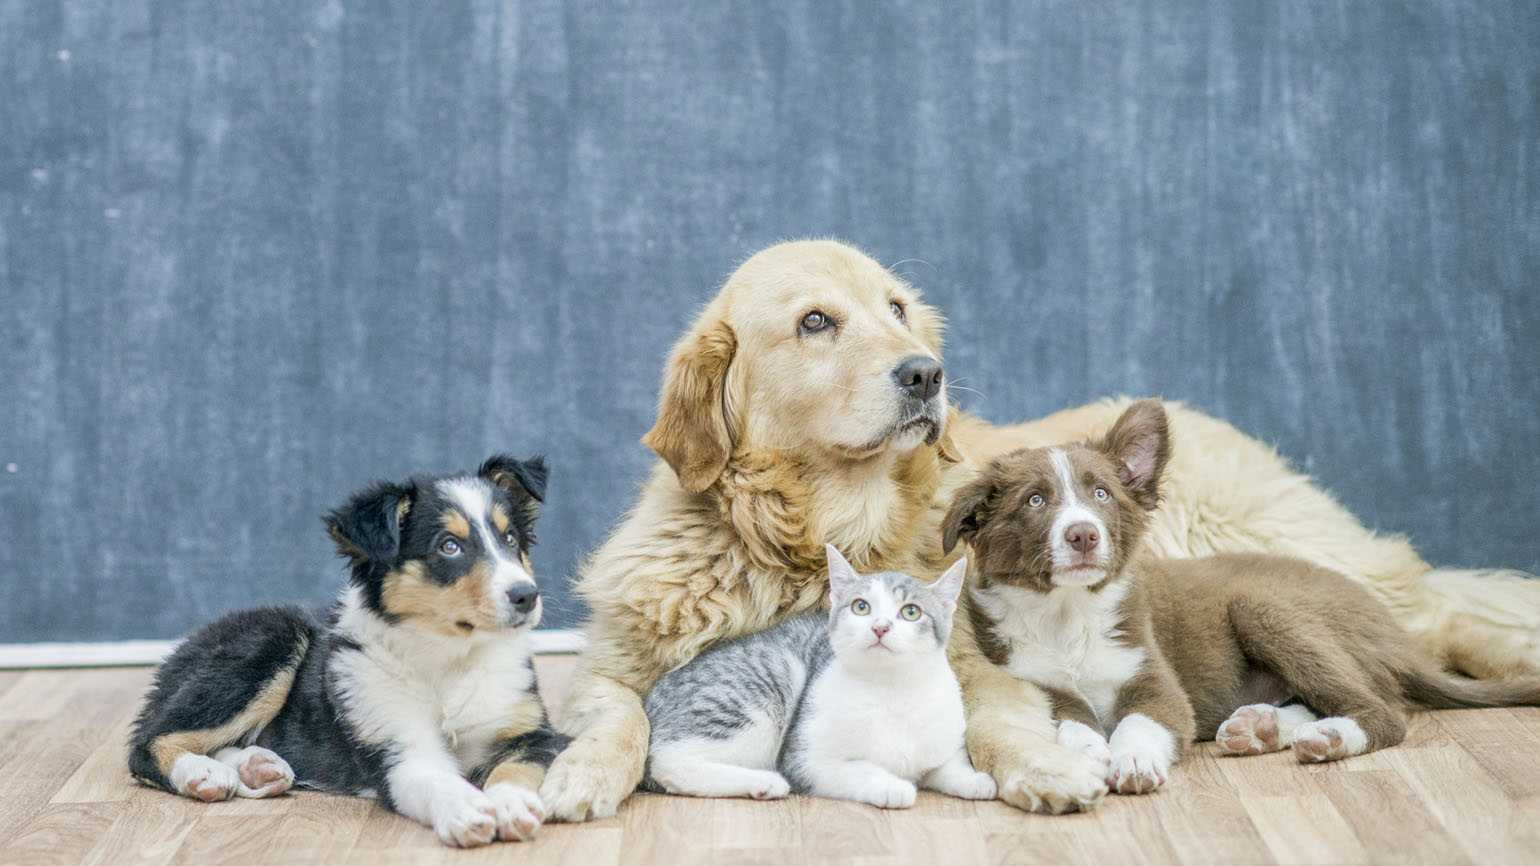 A group photo of three different breeds of dogs and a cat together.